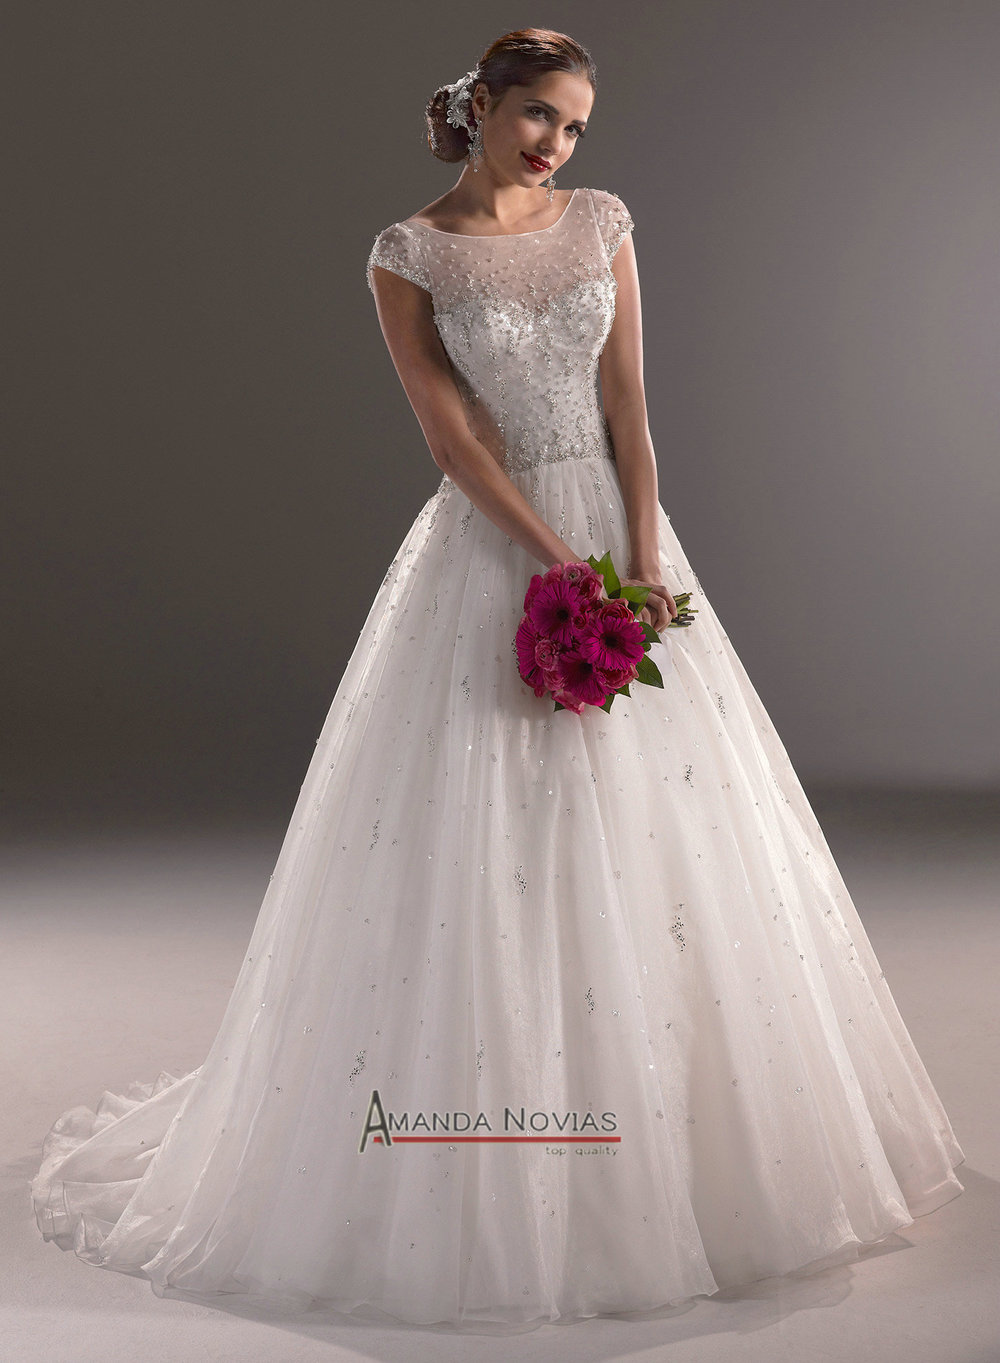 Ma wedding dresses wedding short dresses ma wedding dresses 36 ombrellifo Image collections